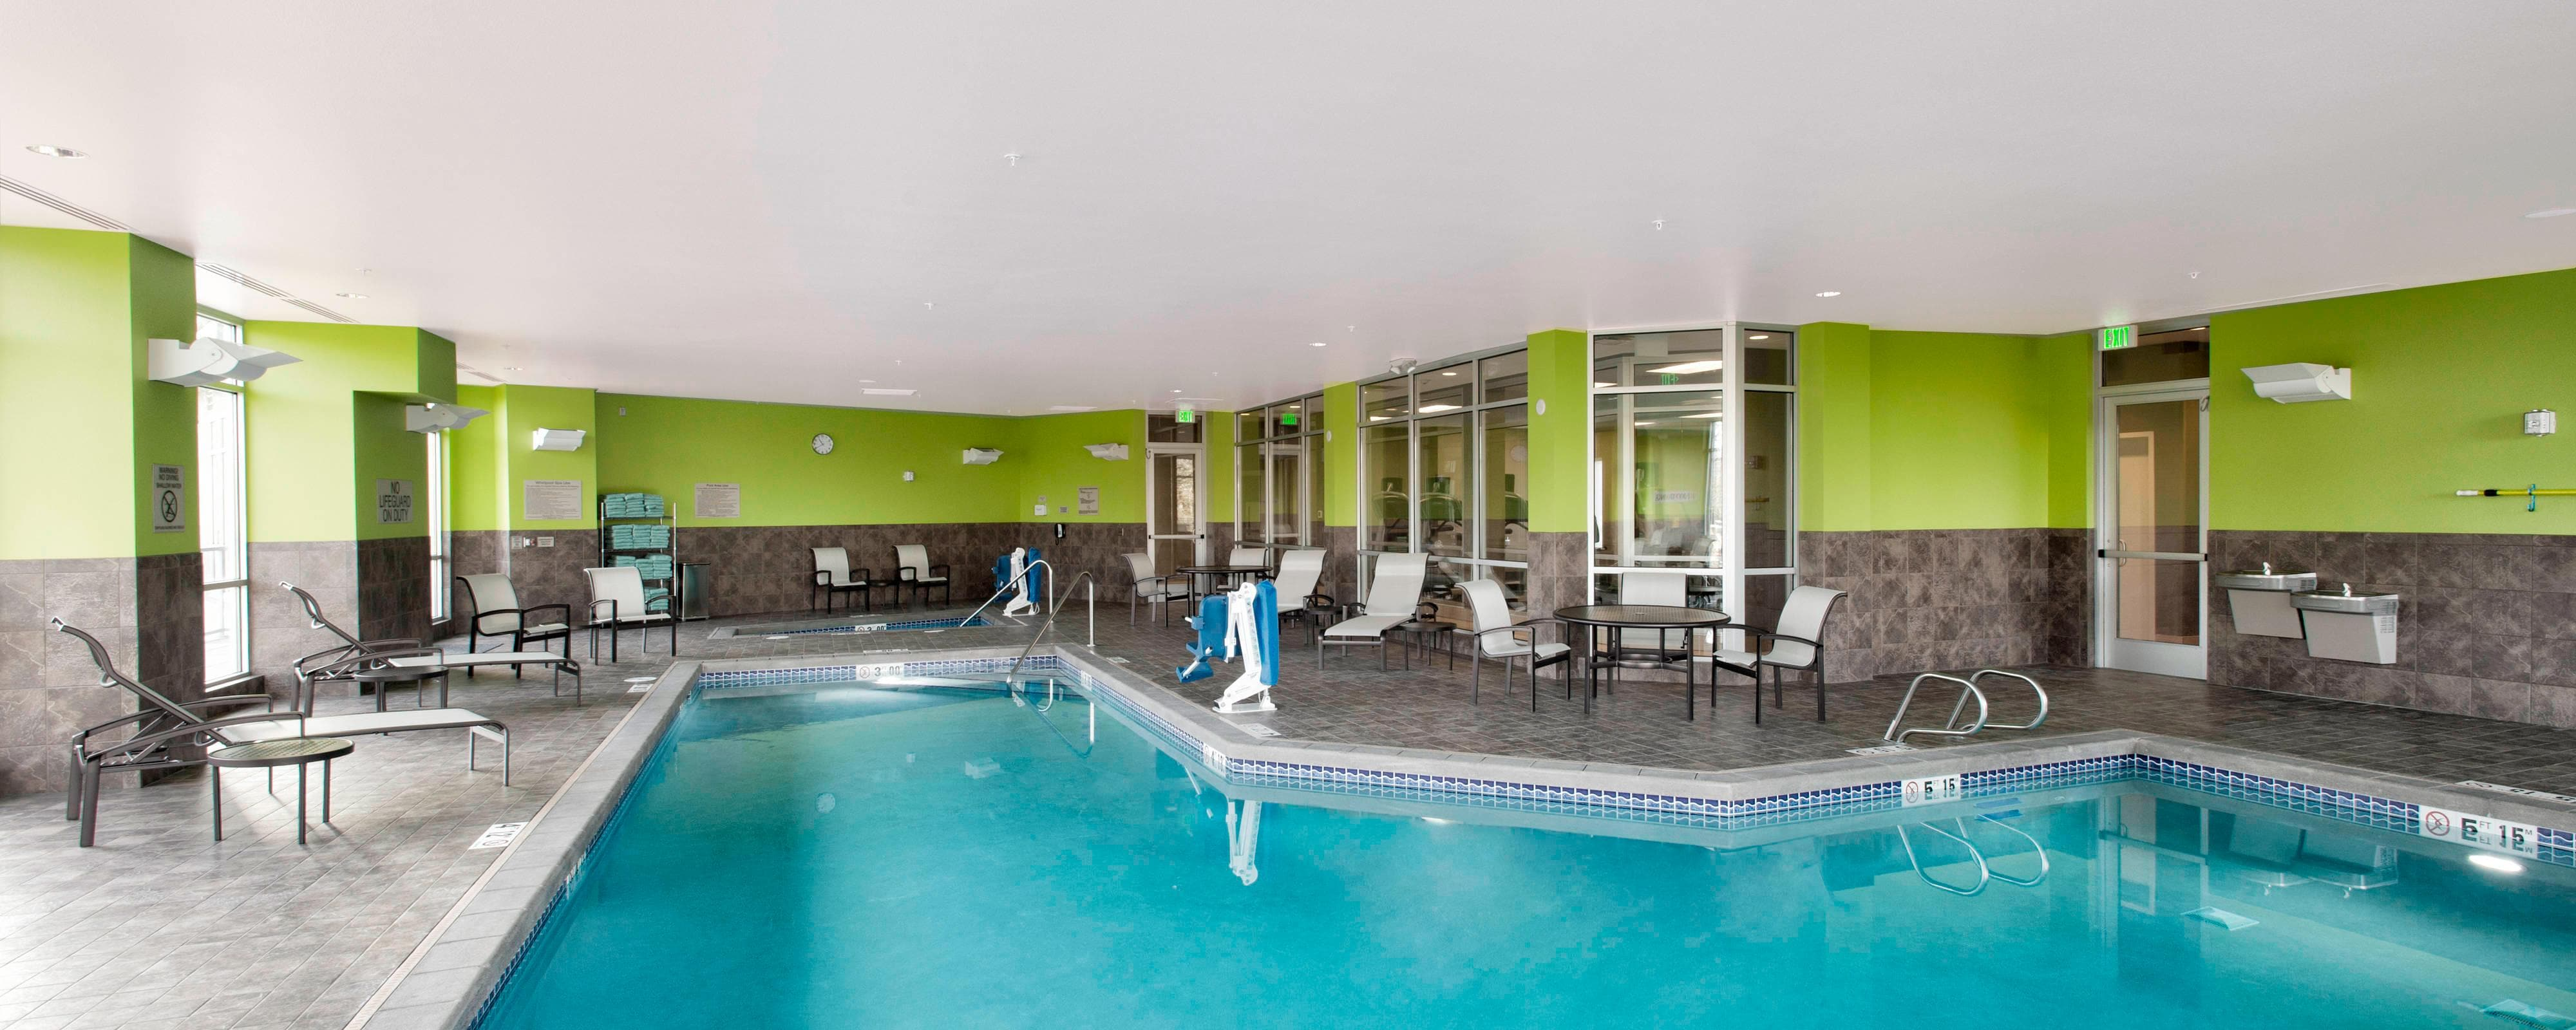 Bellingham hotel indoor pool